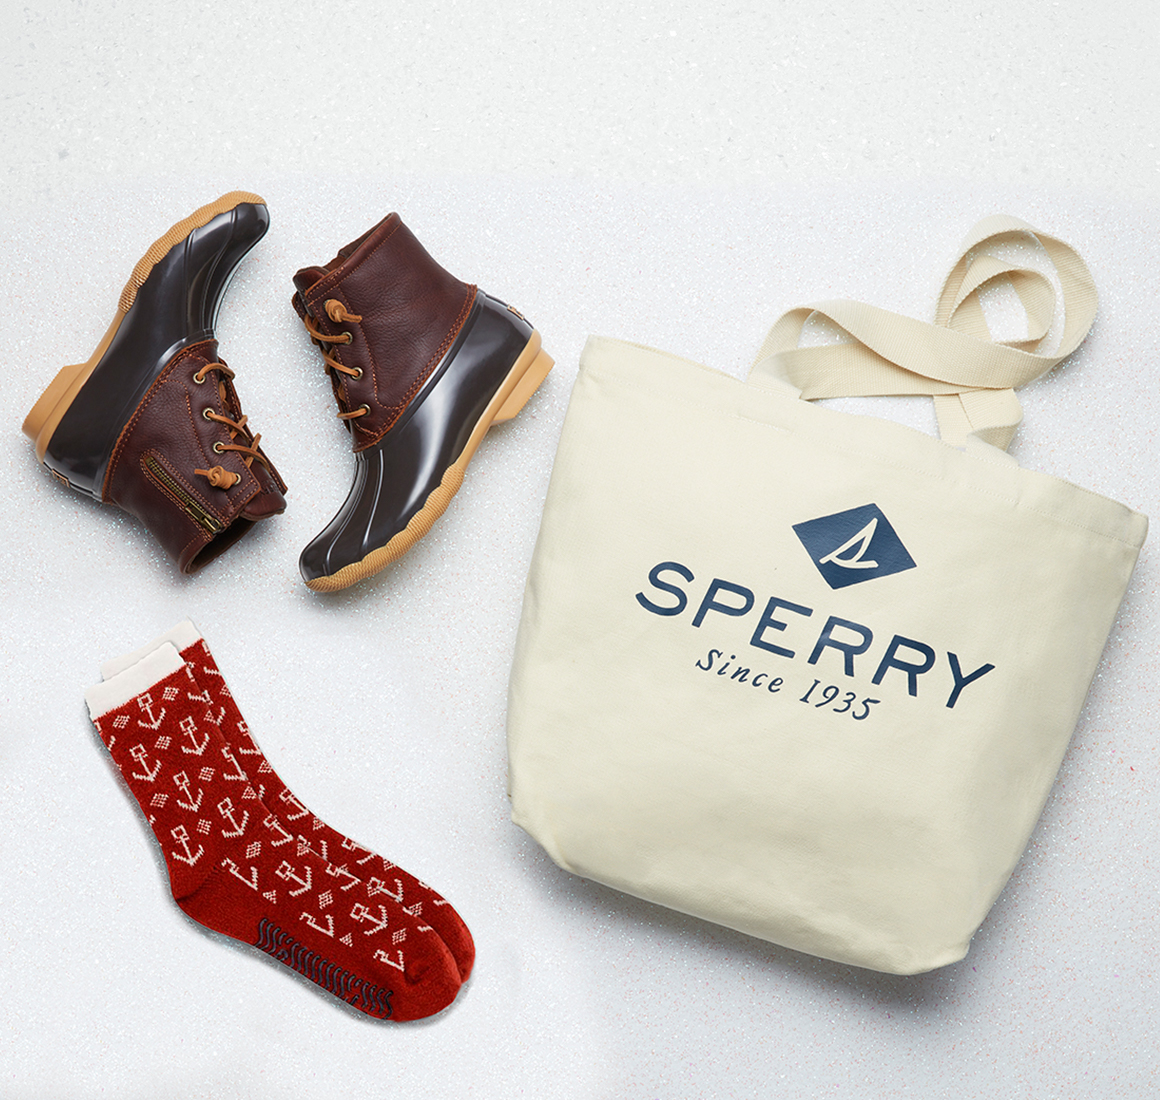 Boots, socks, and tote bag.